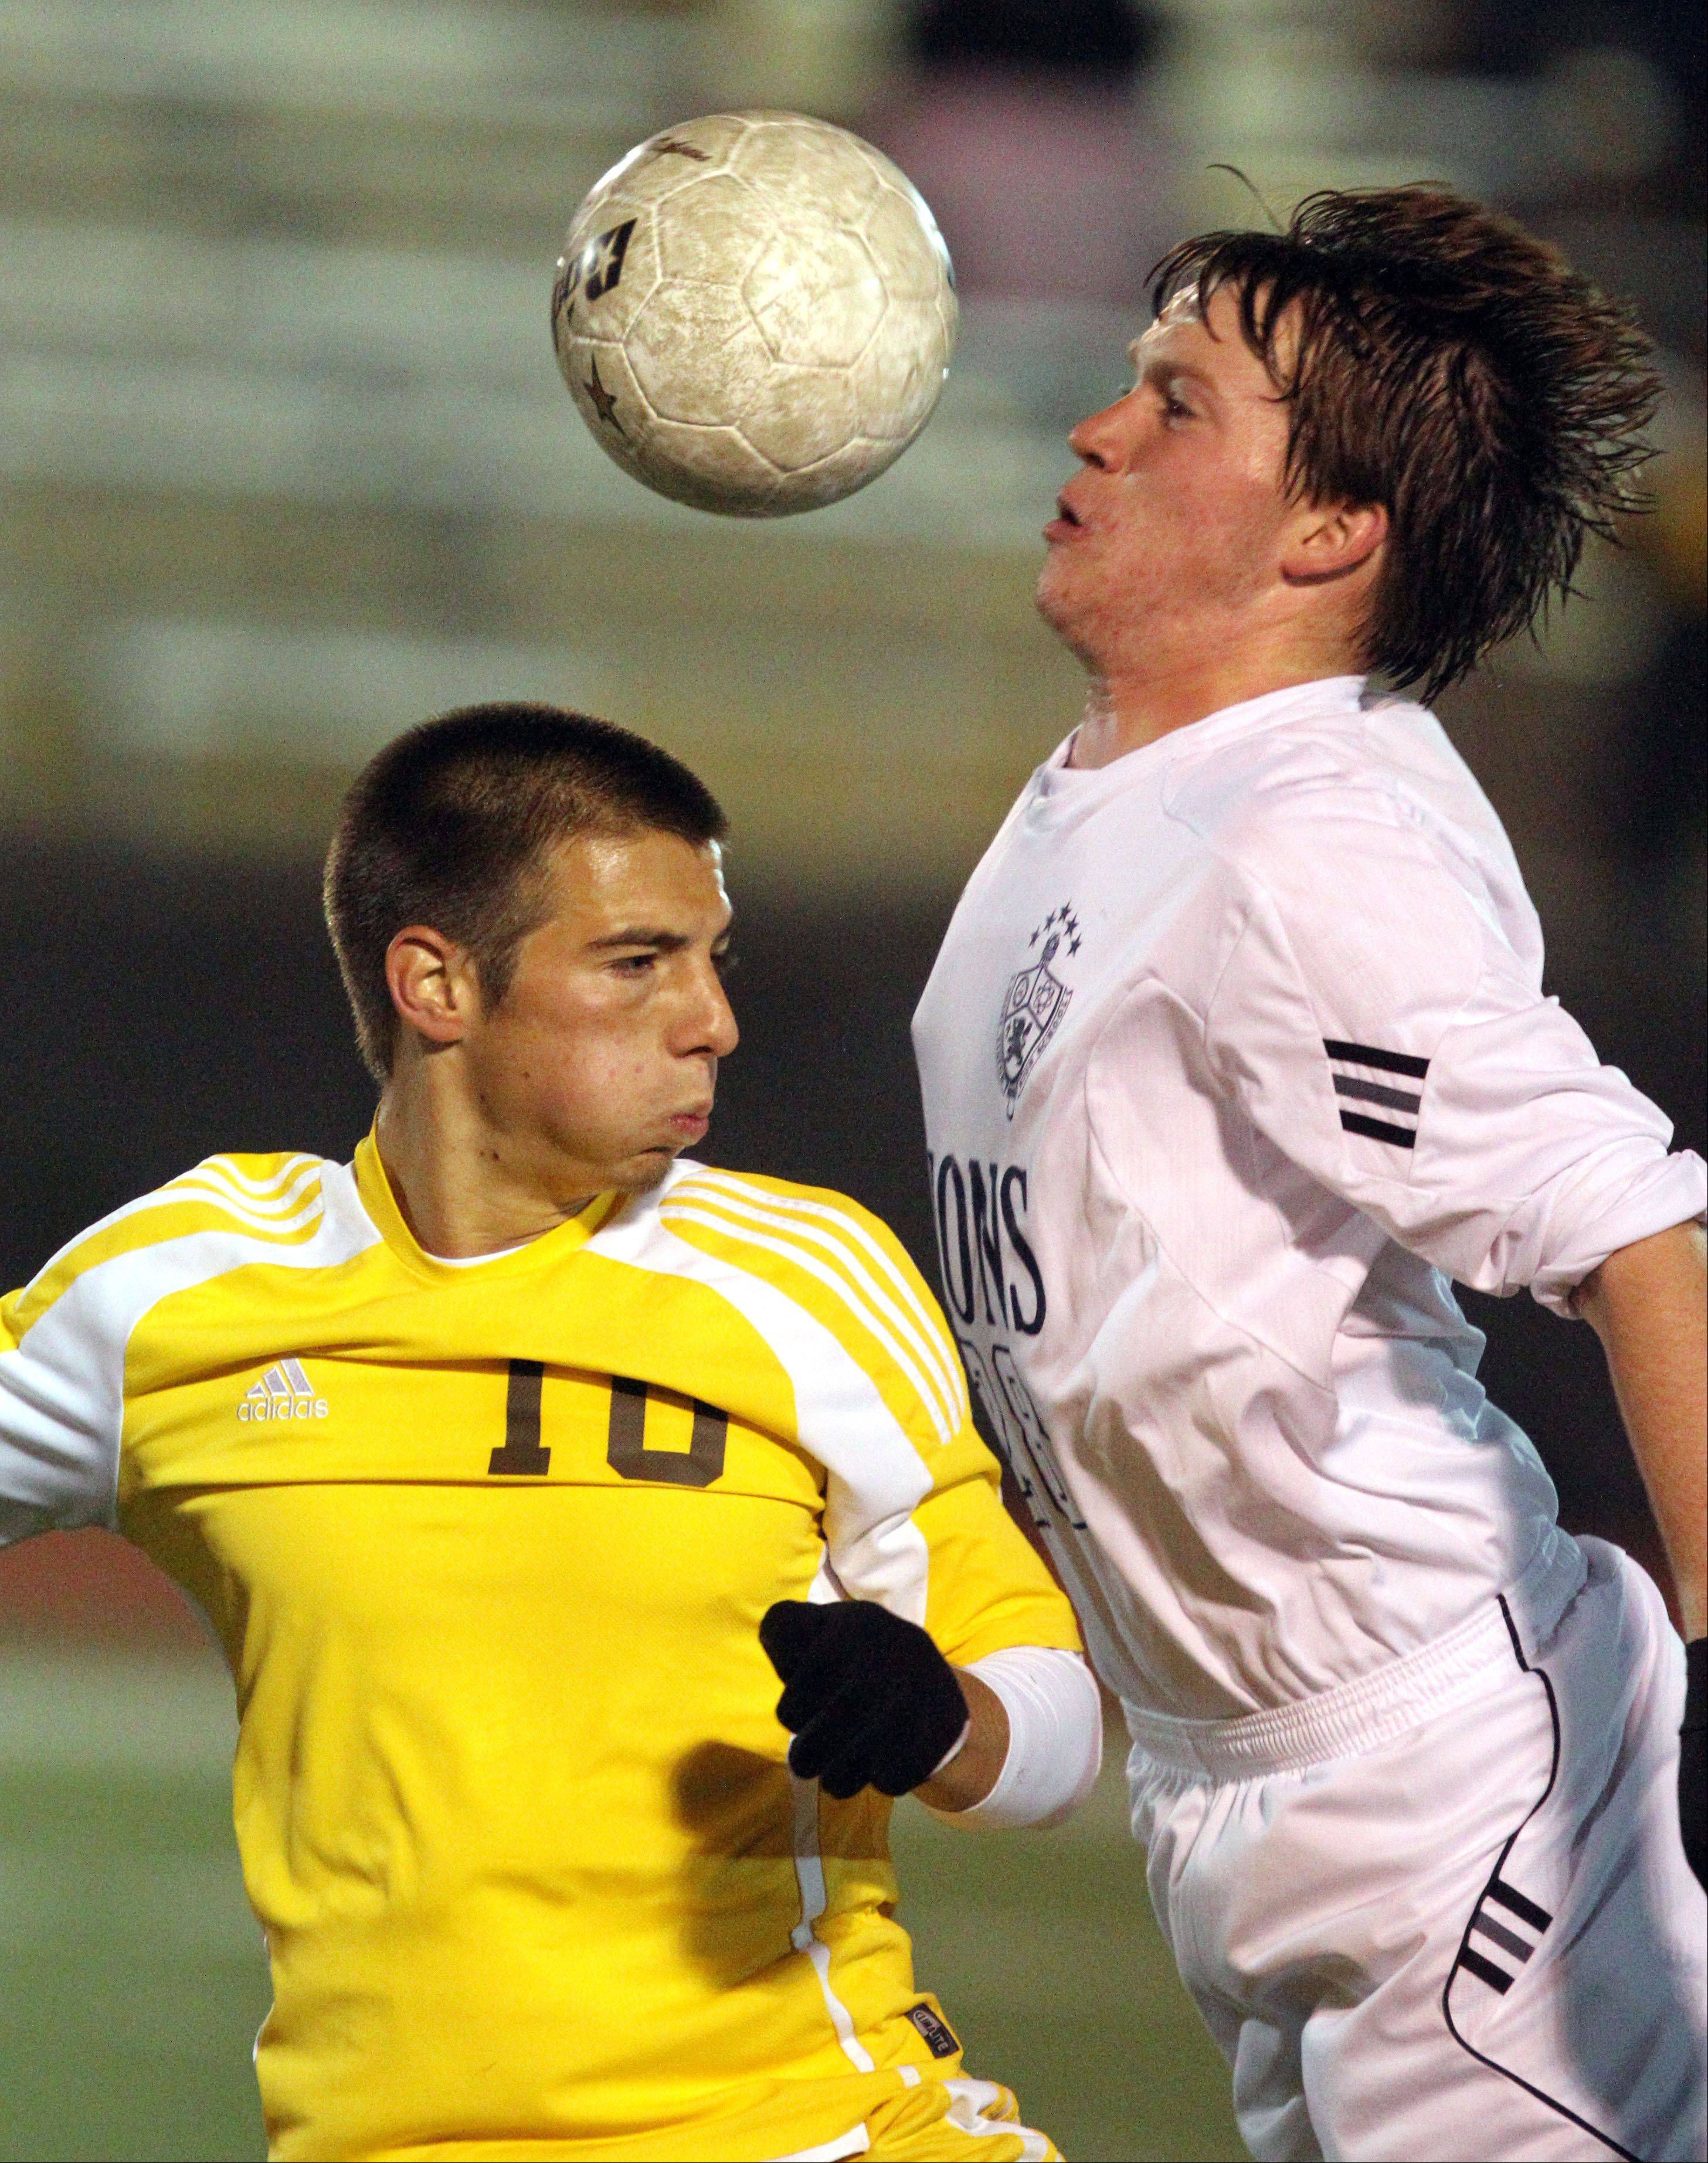 Carmel's Adam Cloe, left, and St. Viator's Kevin McMahon go up for a header during regional semifinal action Tuesday night at Carmel Catholic High School.